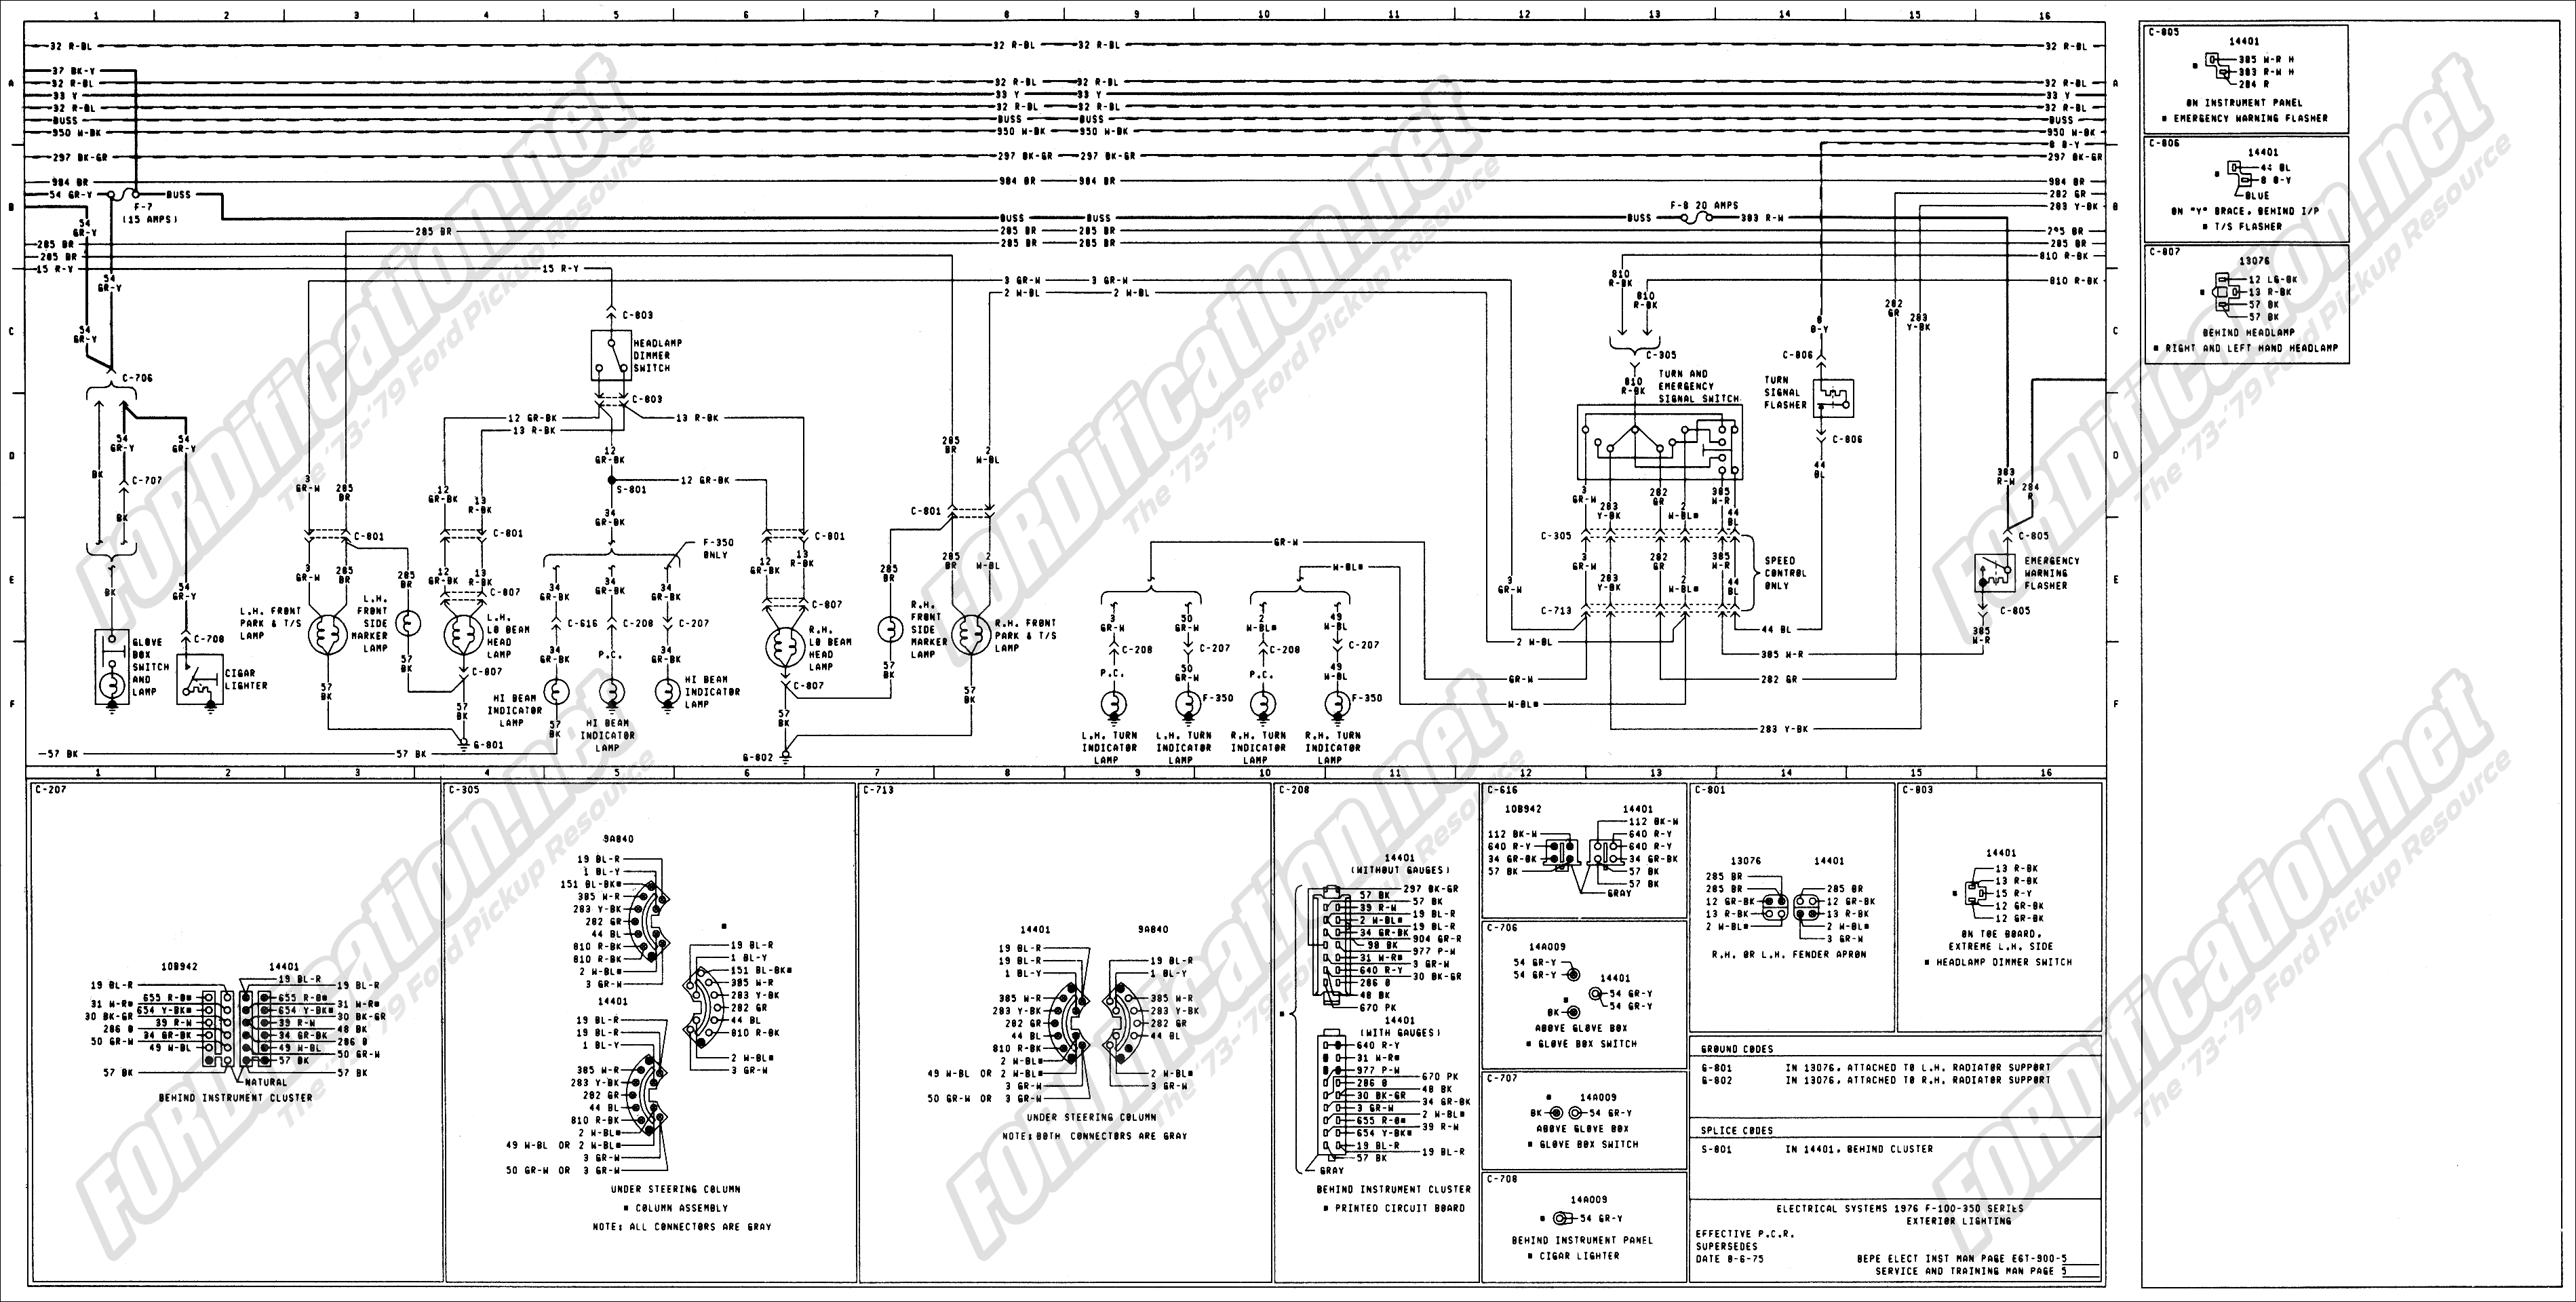 wiring_76master_5of9 1973 1979 ford truck wiring diagrams & schematics fordification net 1977 ford f100 wiring diagram at n-0.co